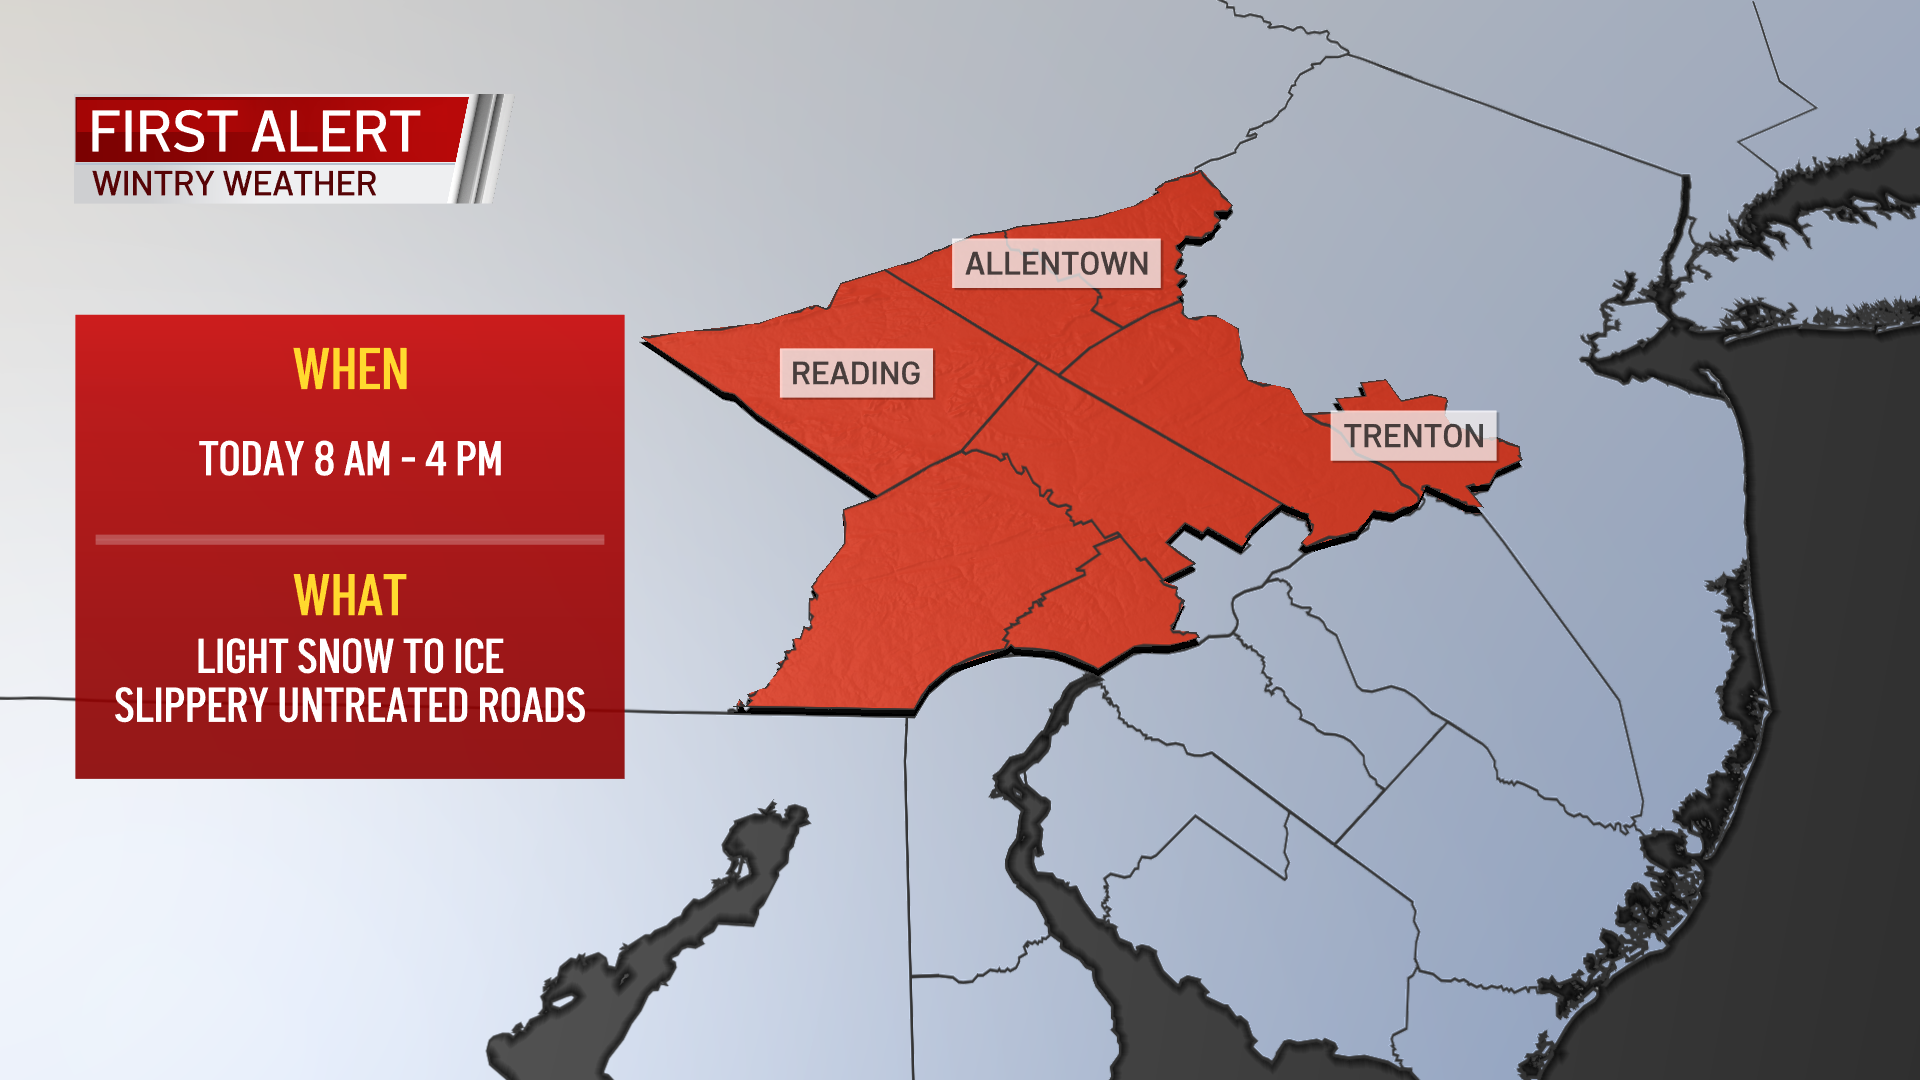 A First Alert NBC10 weather map